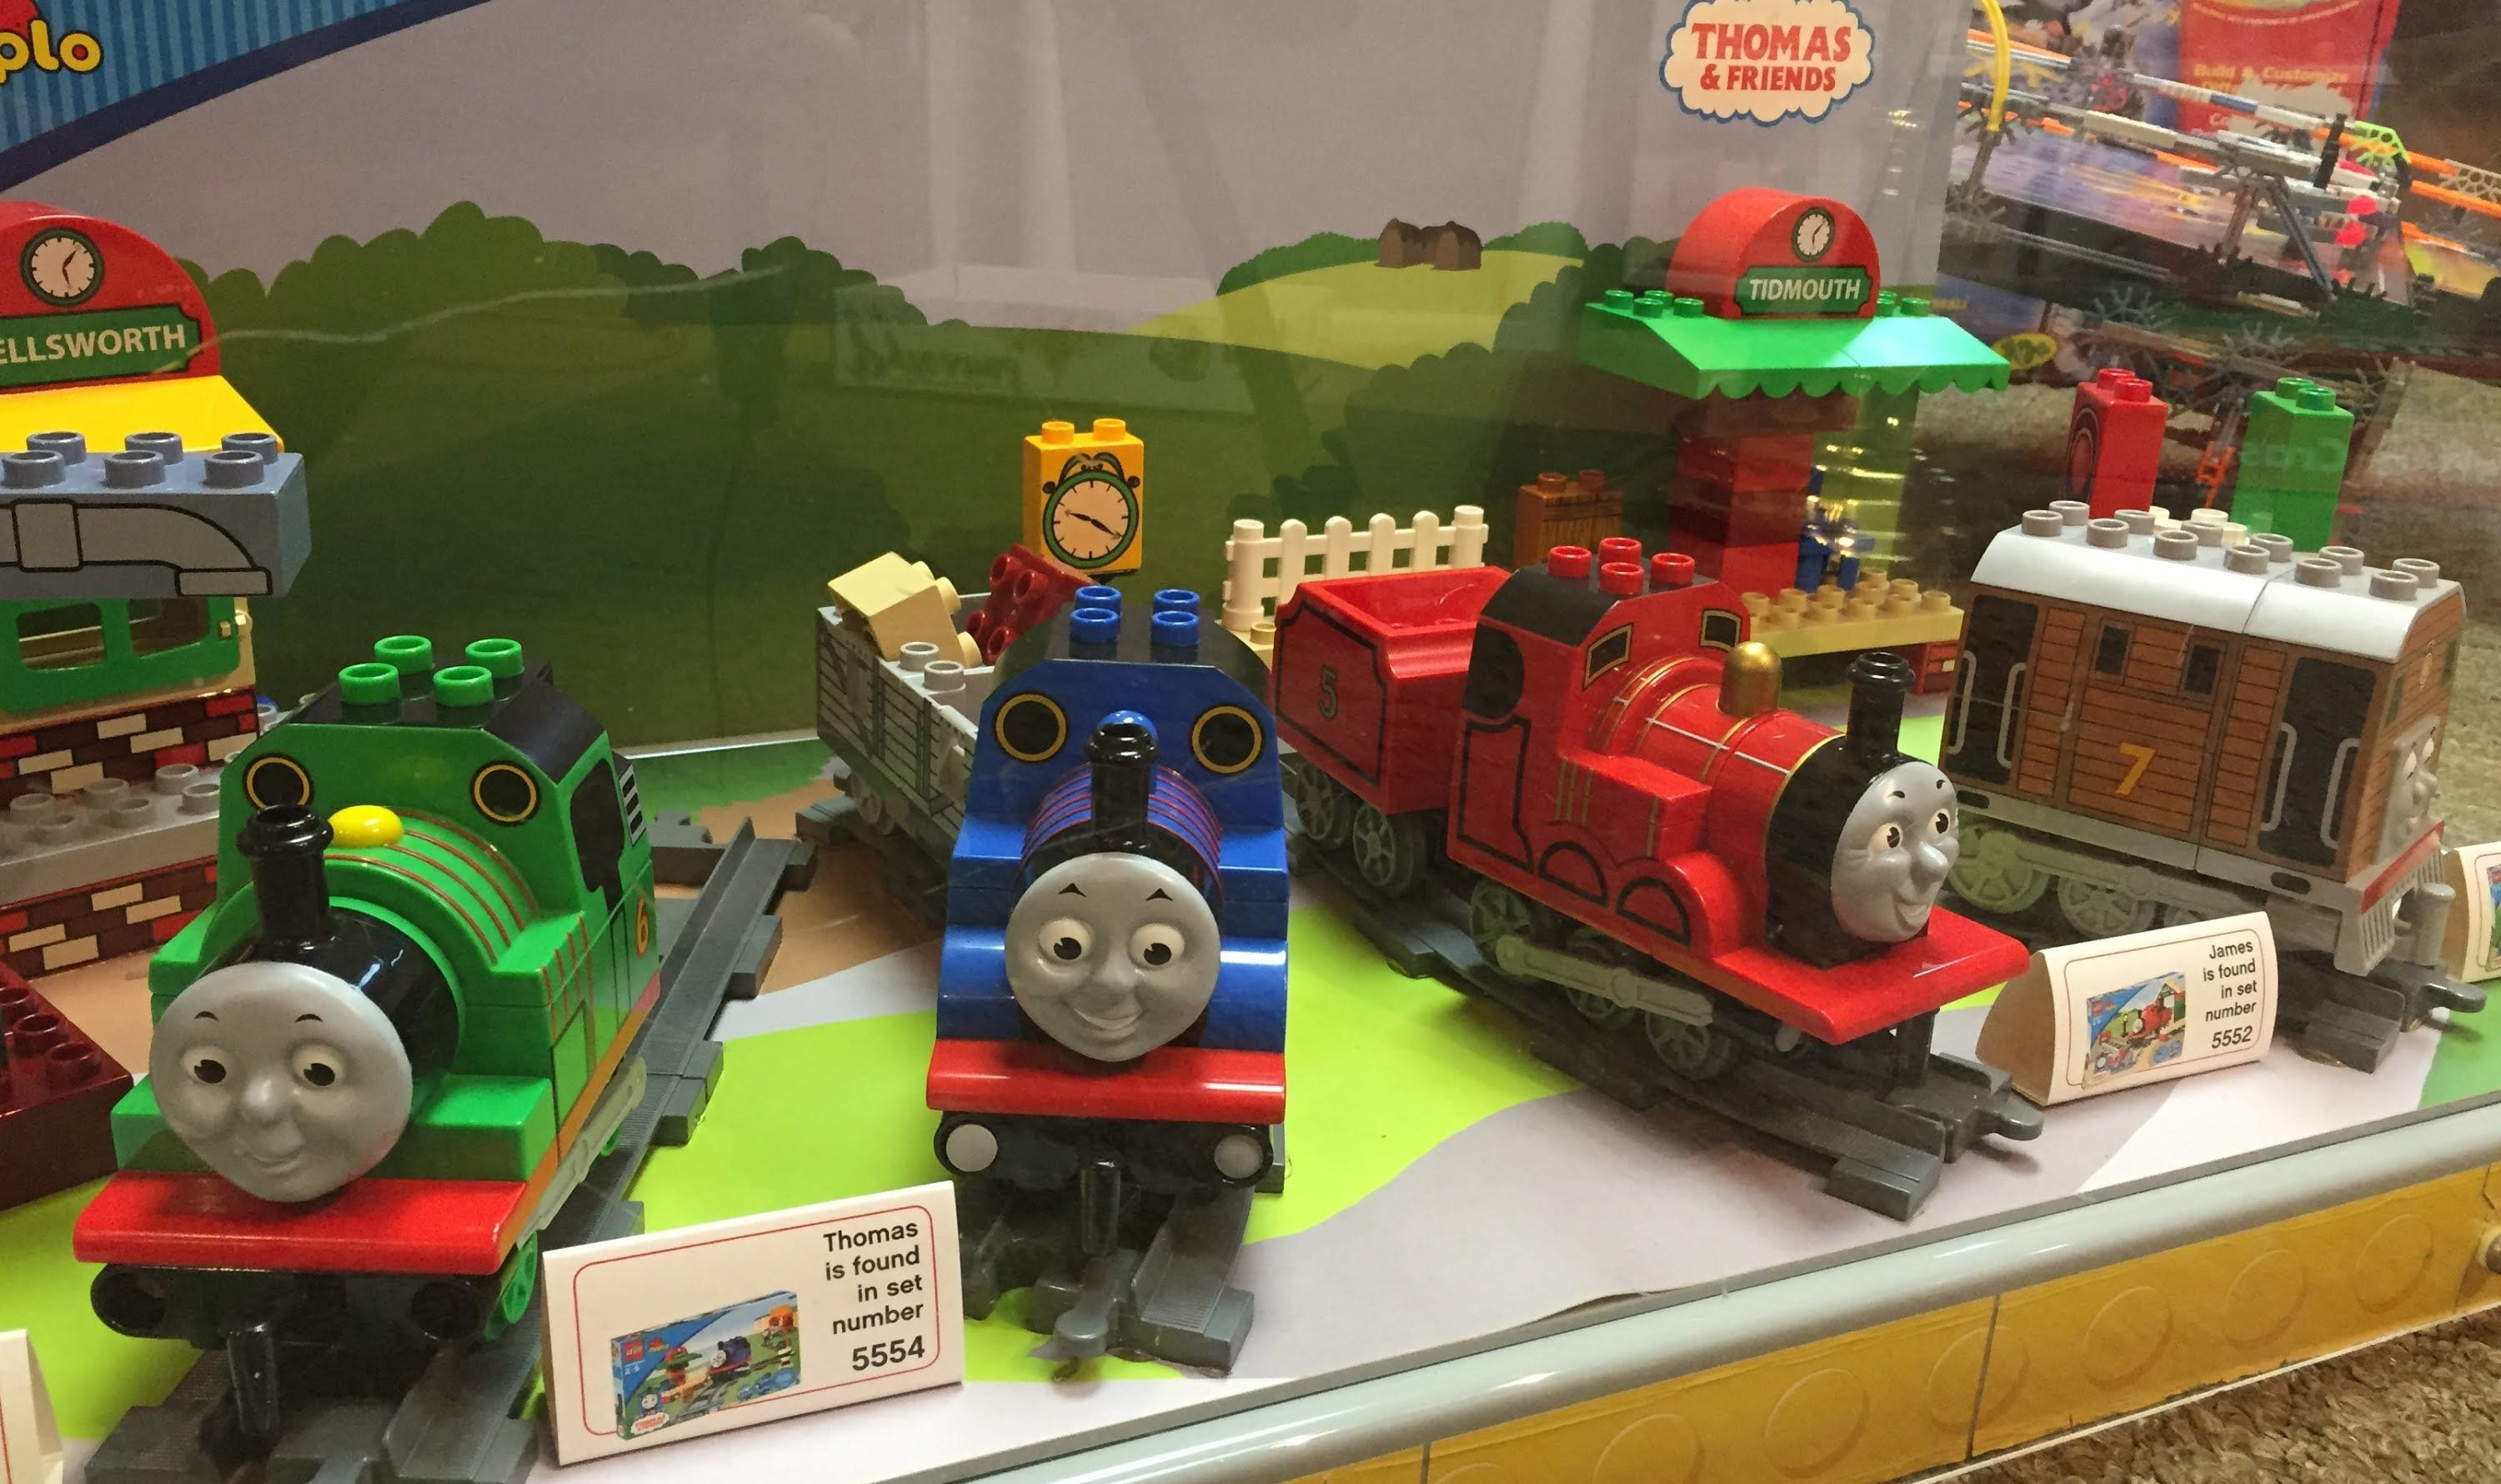 Thomas The Tank Engine And Friends Store Display Lego